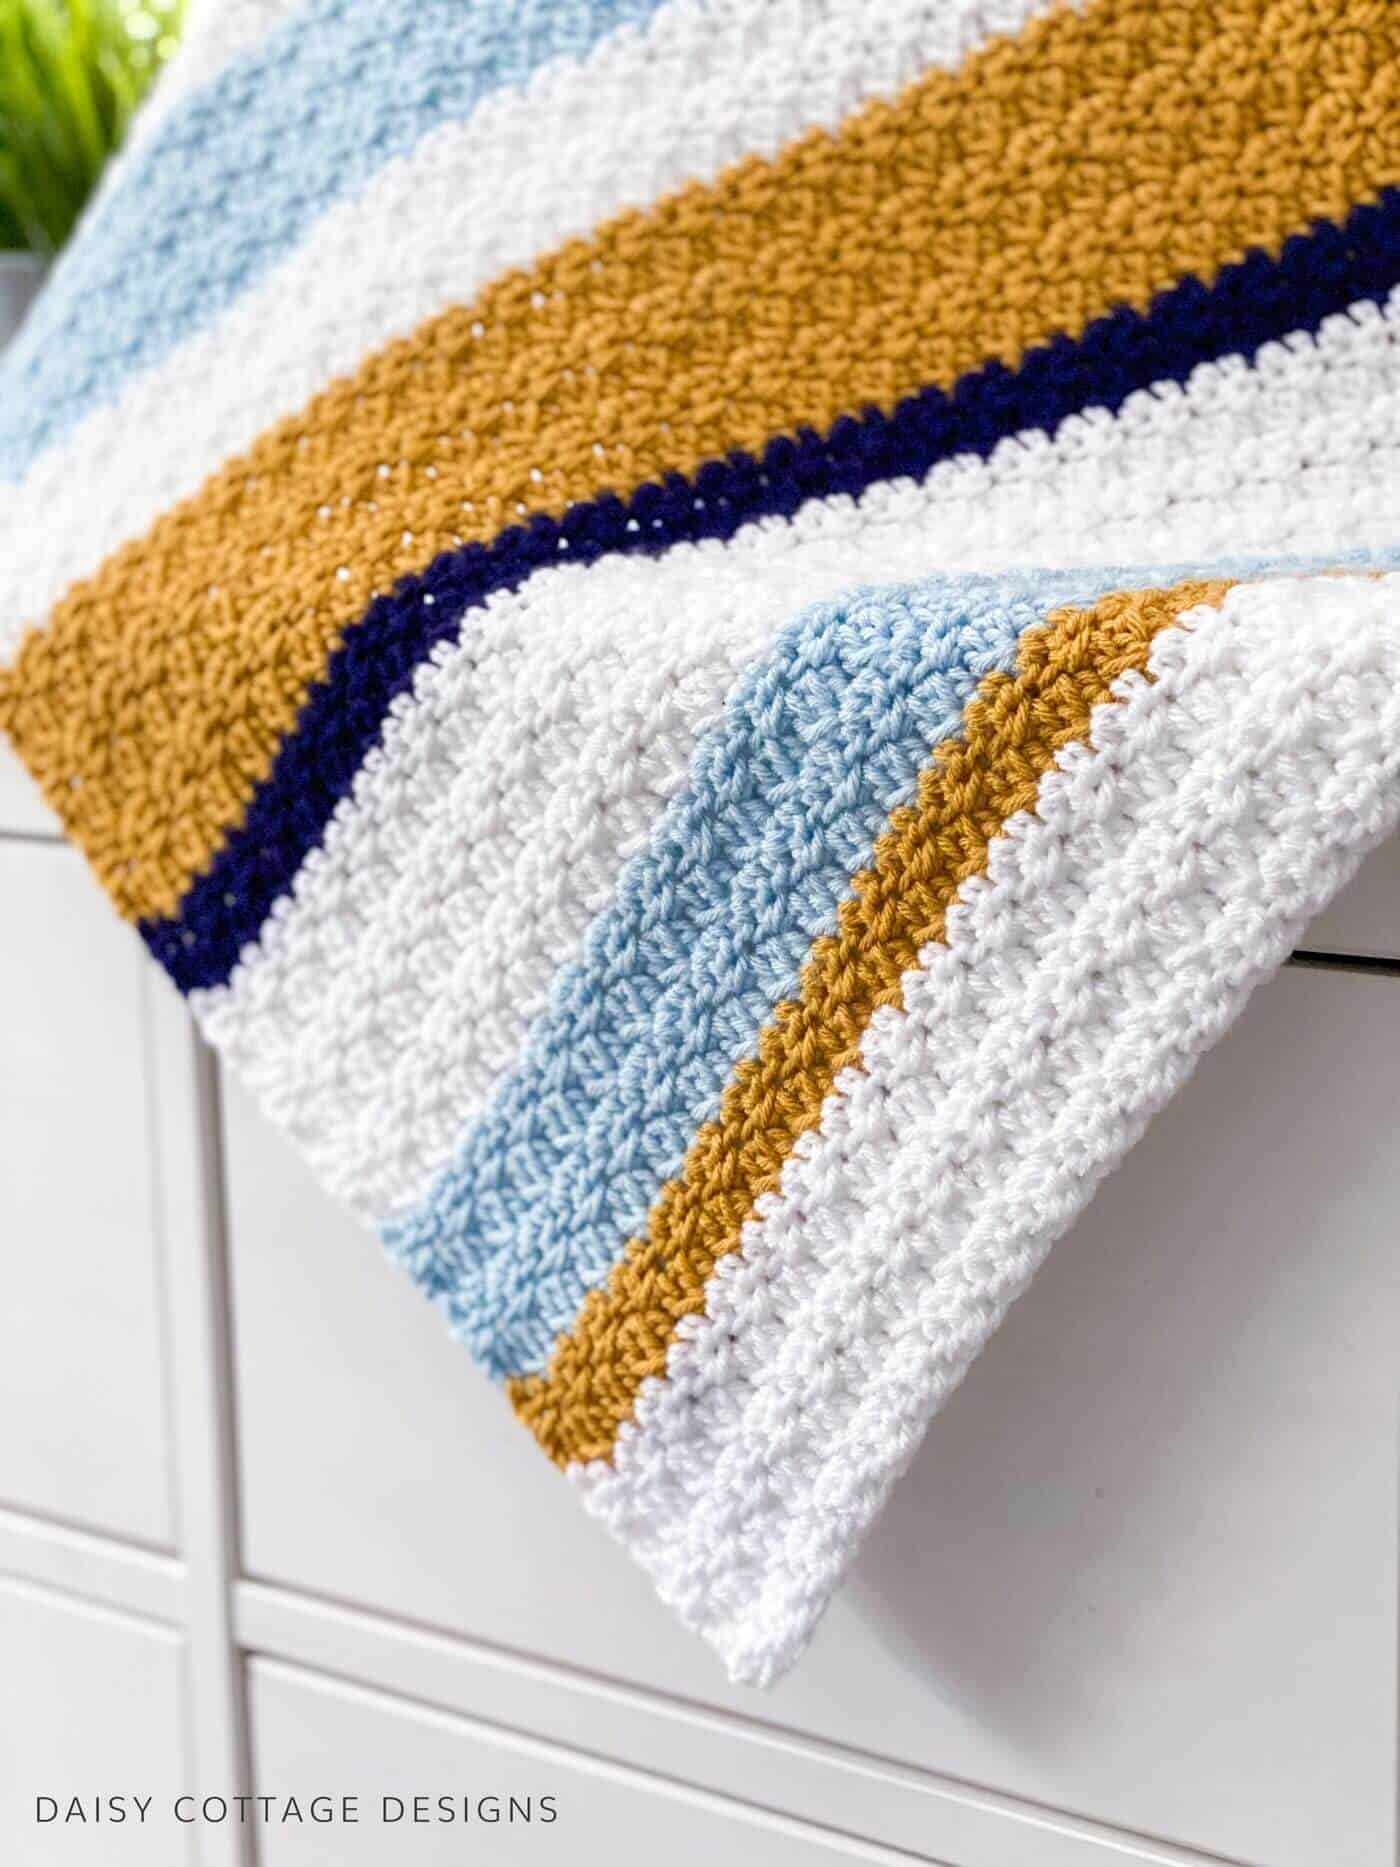 Use this Modern Crochet Blanket Pattern from Daisy Cottage Designs to create your next beautiful blanket.